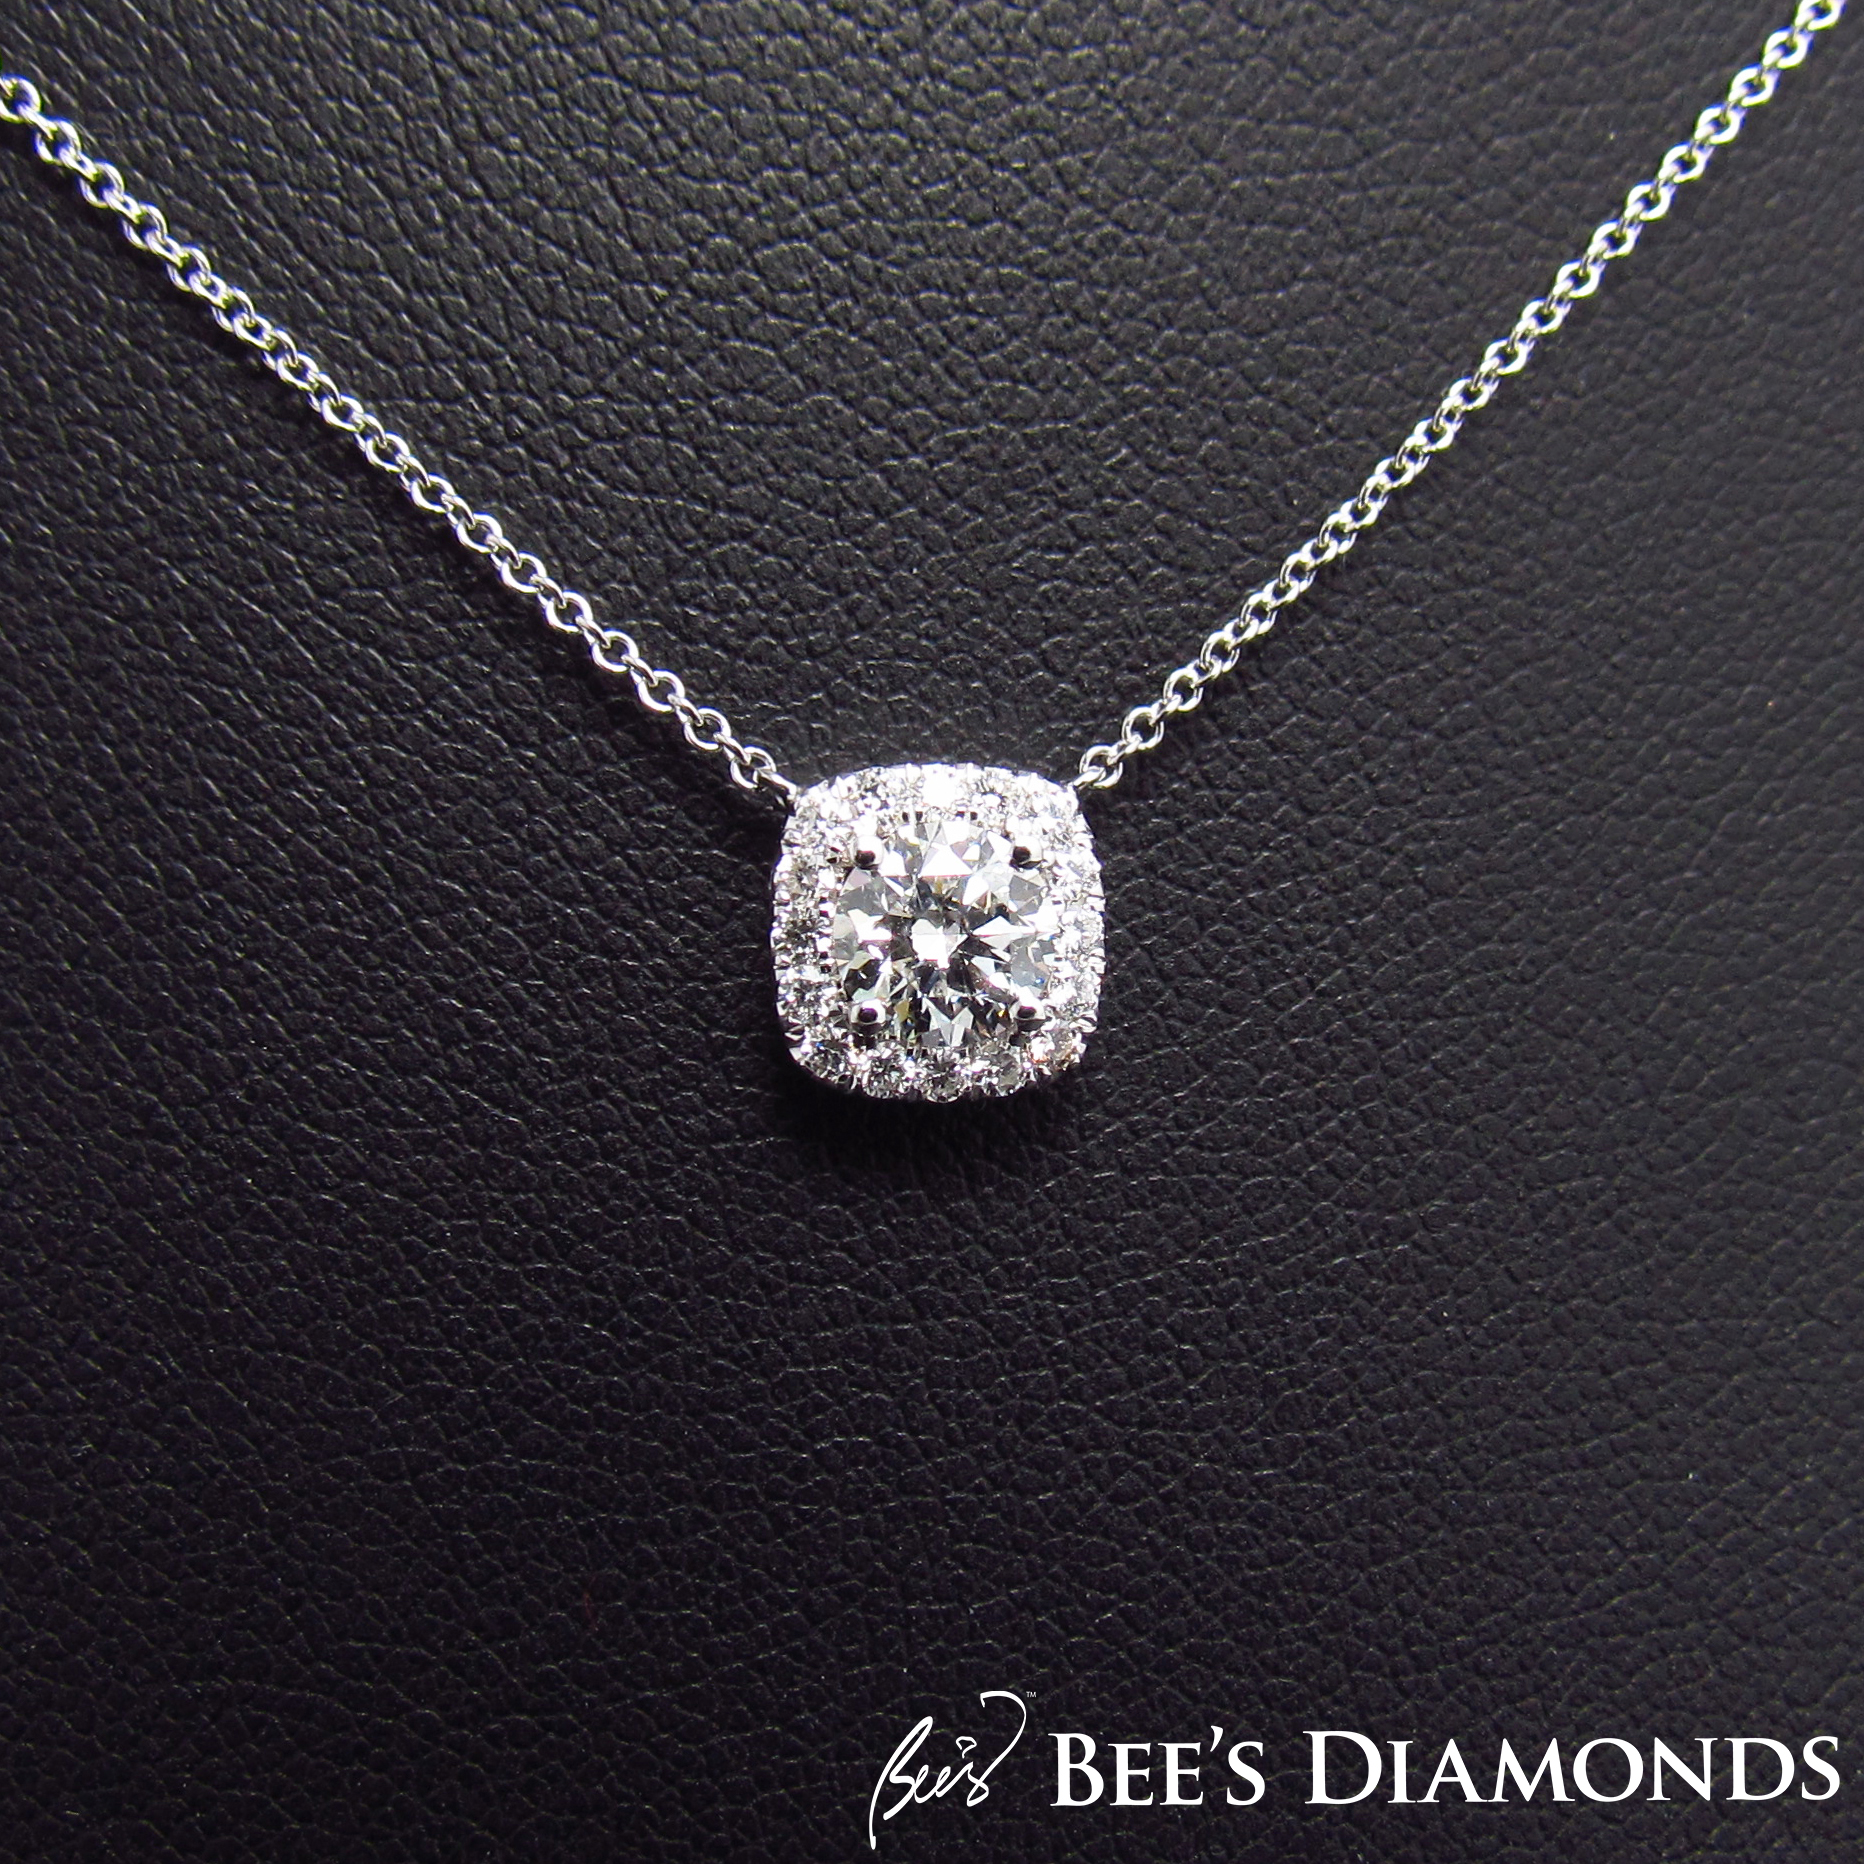 Round diamond square halo, pendant 18K white gold chain